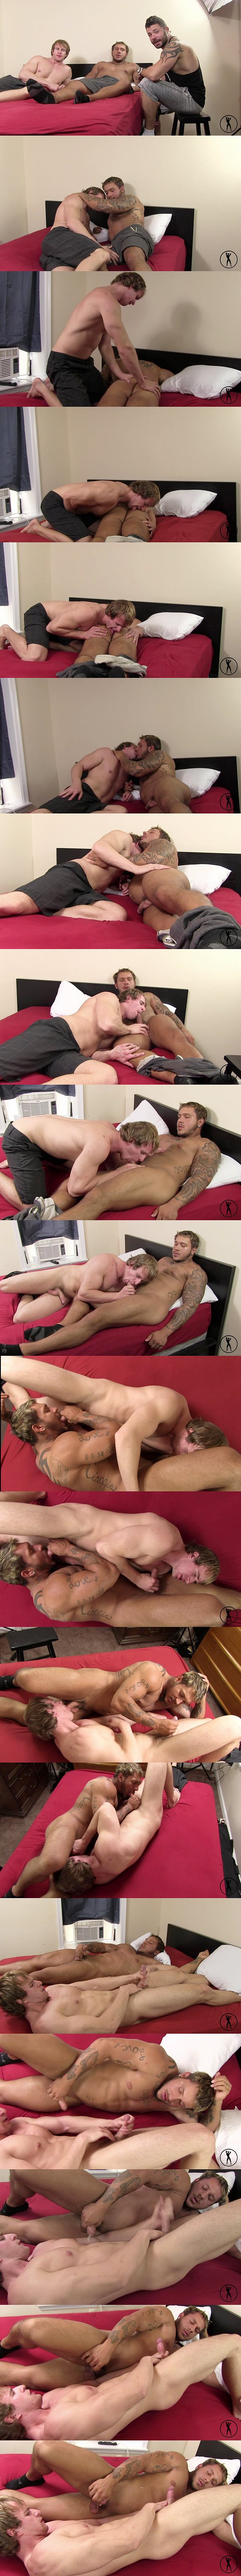 Hot NYC strippers Cameron Foster and Carmine DeAngelo suck each other's dicks until they cum on each other at Buffboyzztv 02